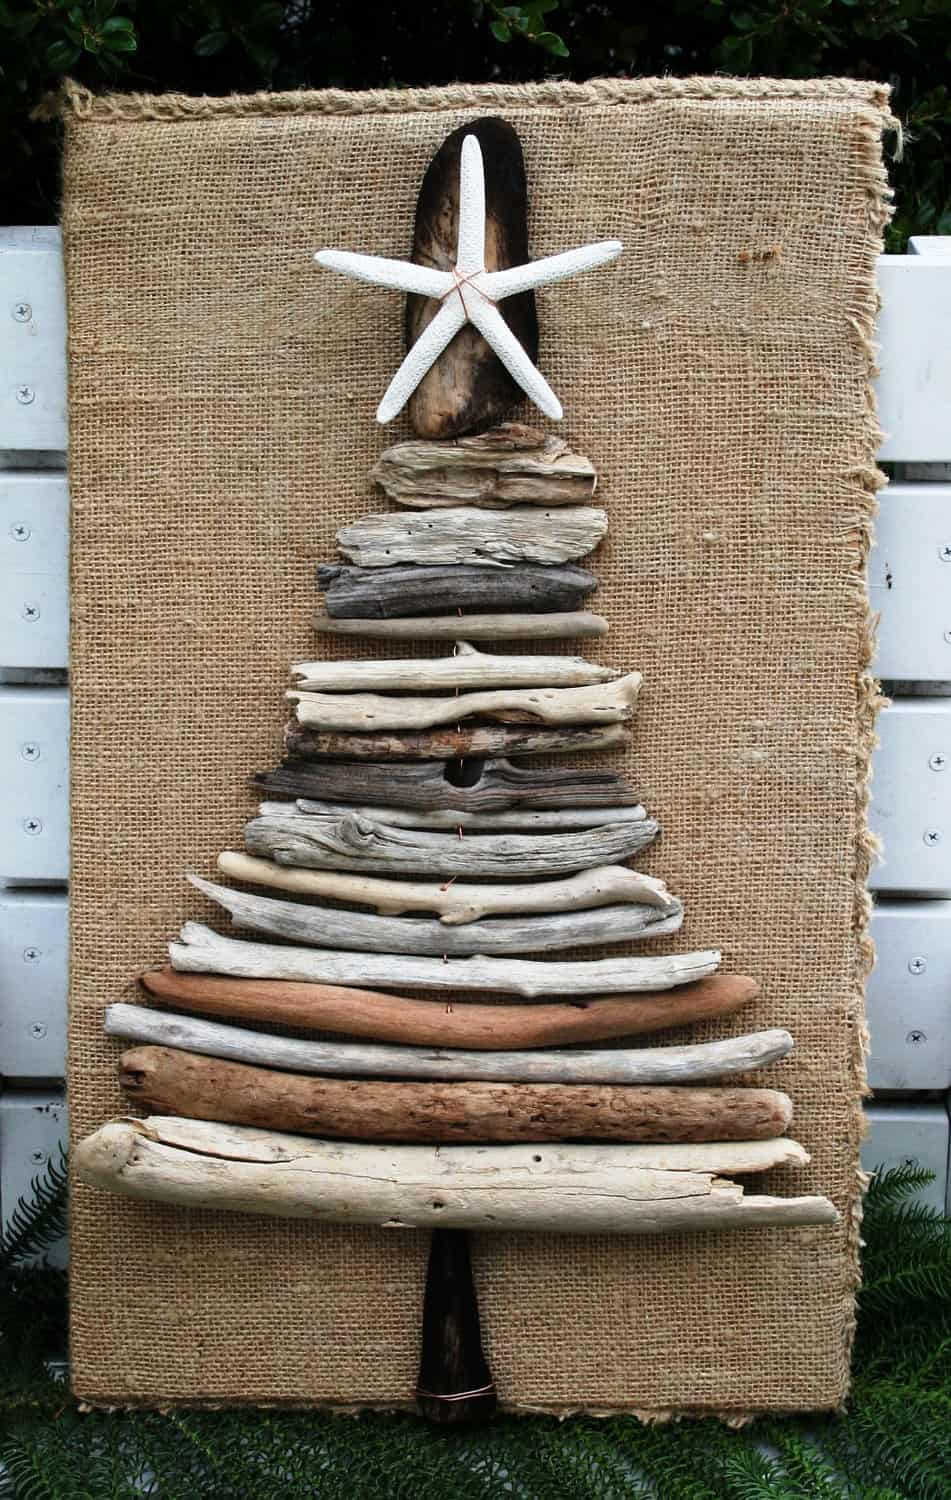 10 Wooden Christmas Trees with EcoStyle